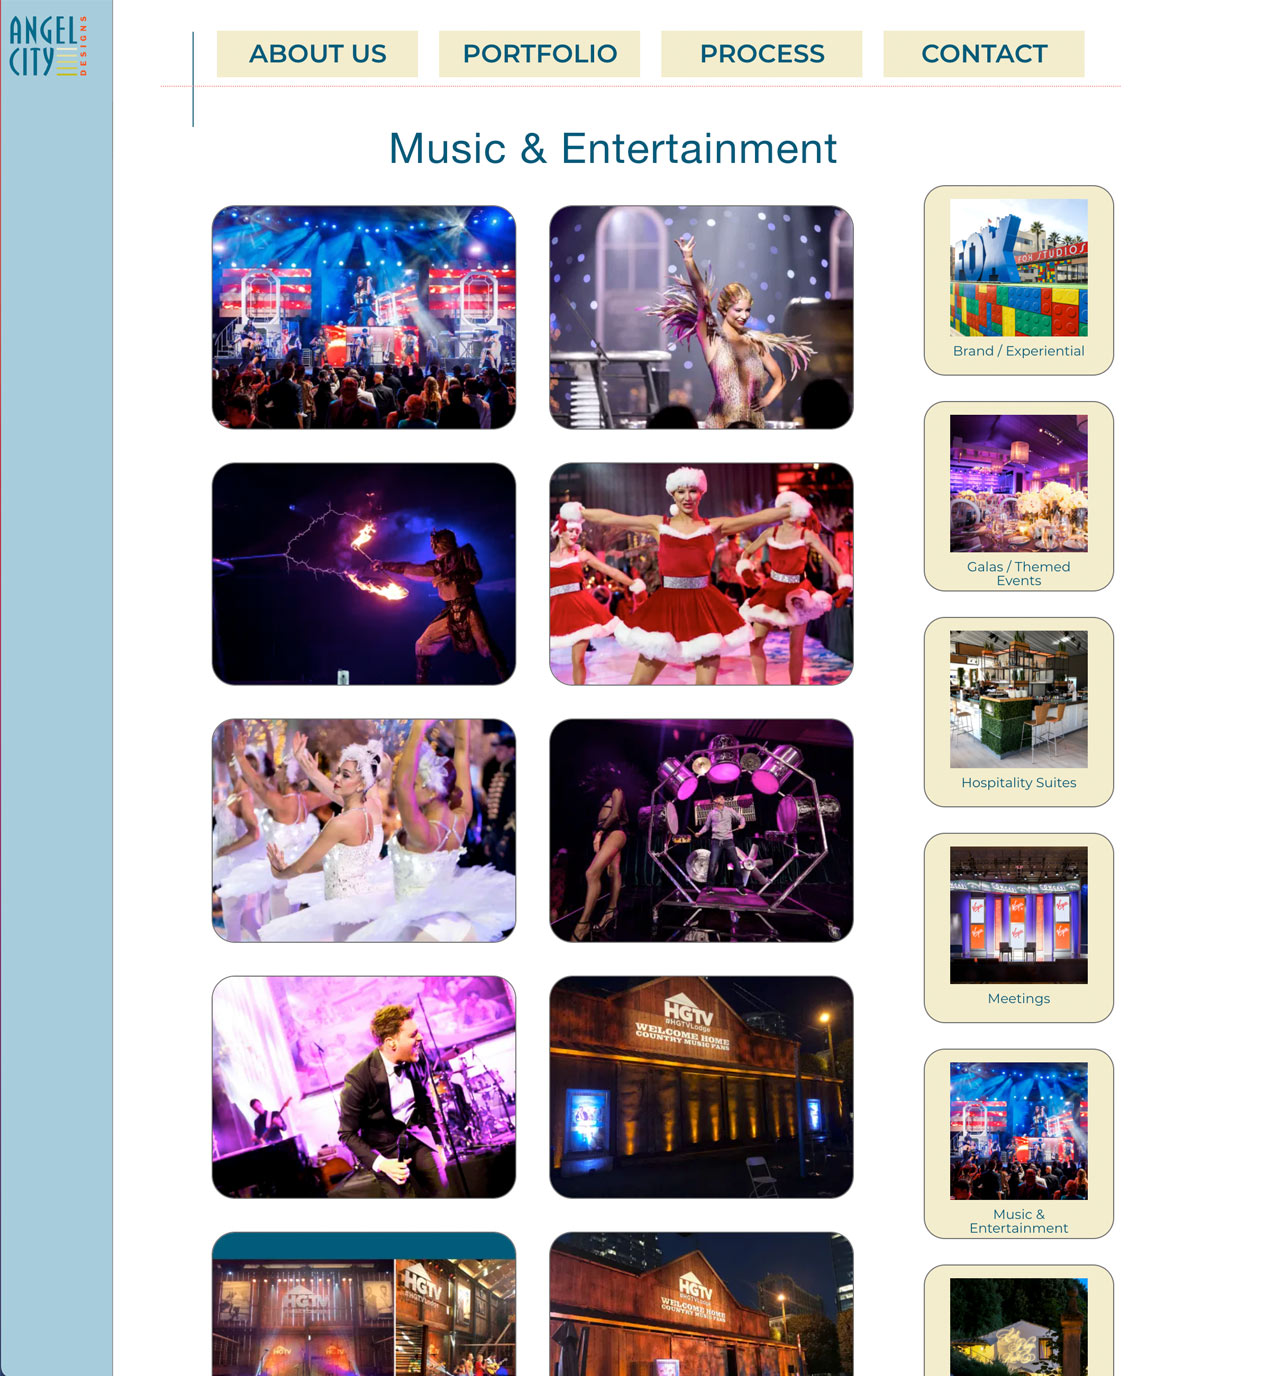 Collage of special event photos showing colorful exotically decorated part events featuring performers on Angel City Designs website